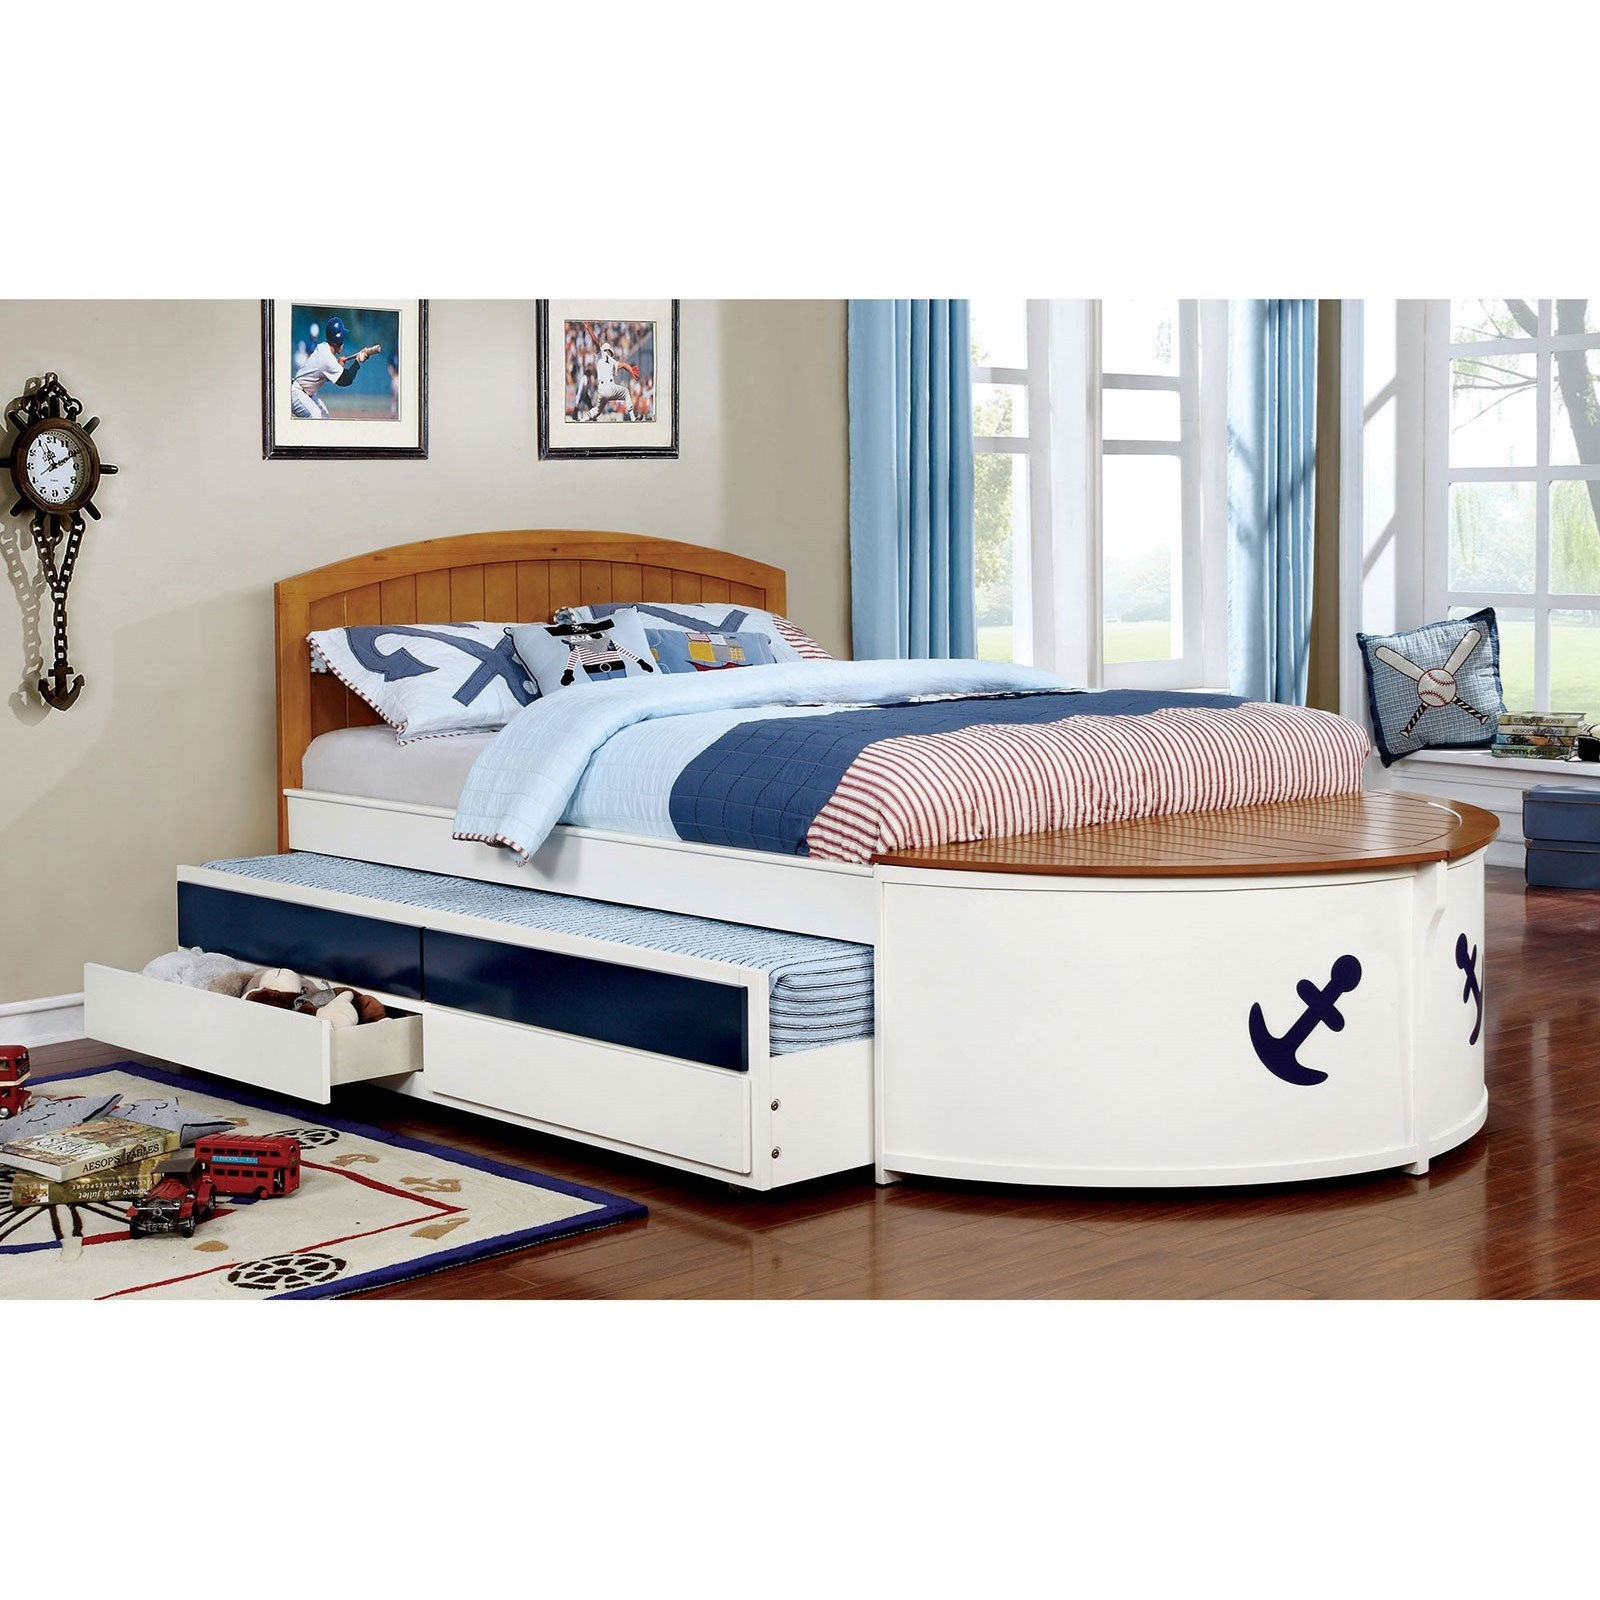 Furniture Of America Voyager Cm7768f Bed Nautical Youth Bedroom Full Size Bed With Trundle And Storage Drawers Corner Furniture Captain S Beds